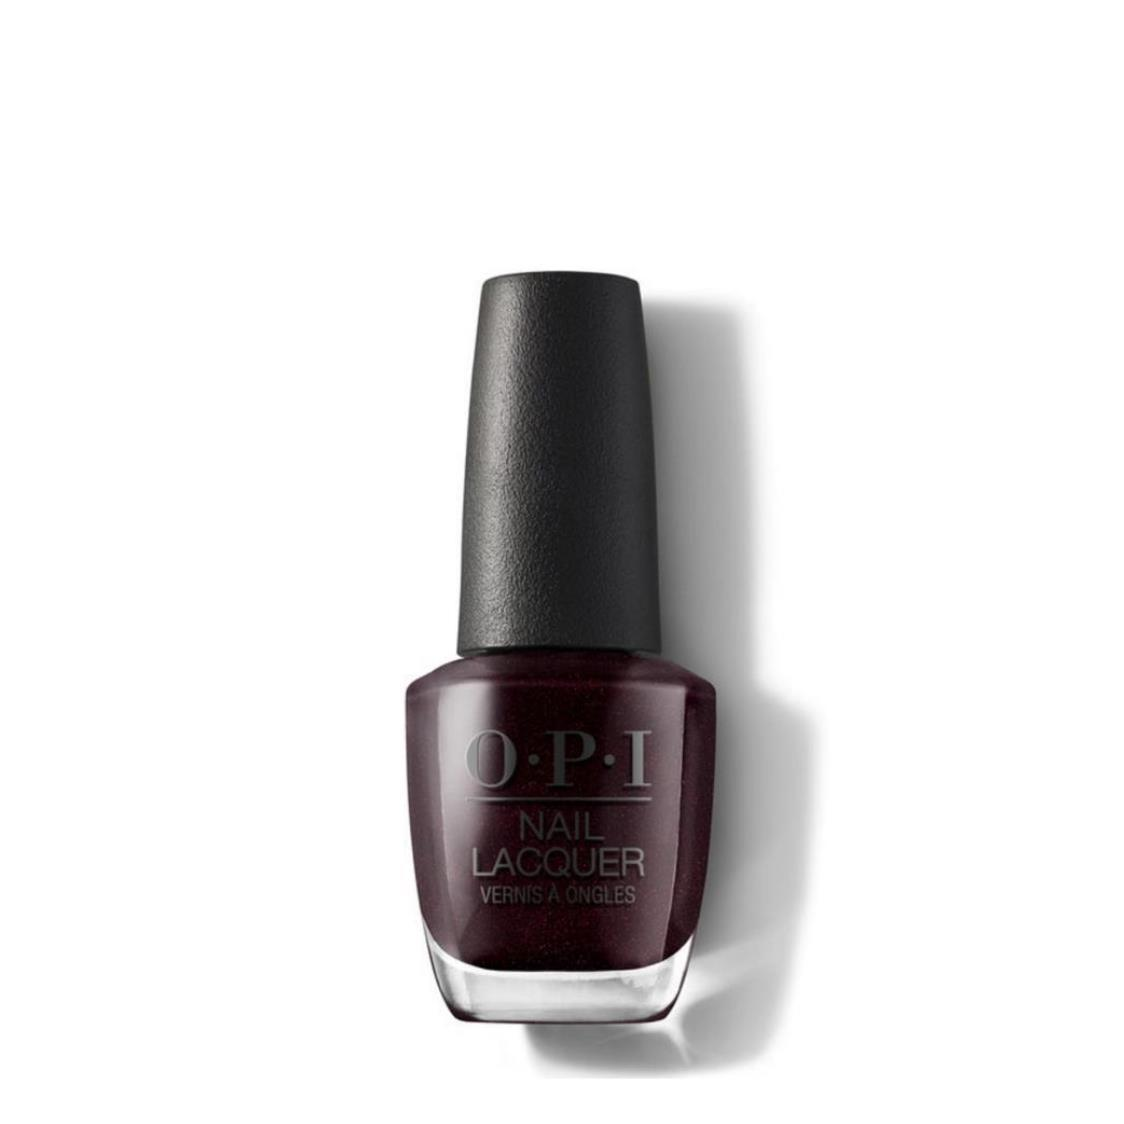 Opi Holiday Collection 2018 Nail Lacquer Black to Reality 15ml